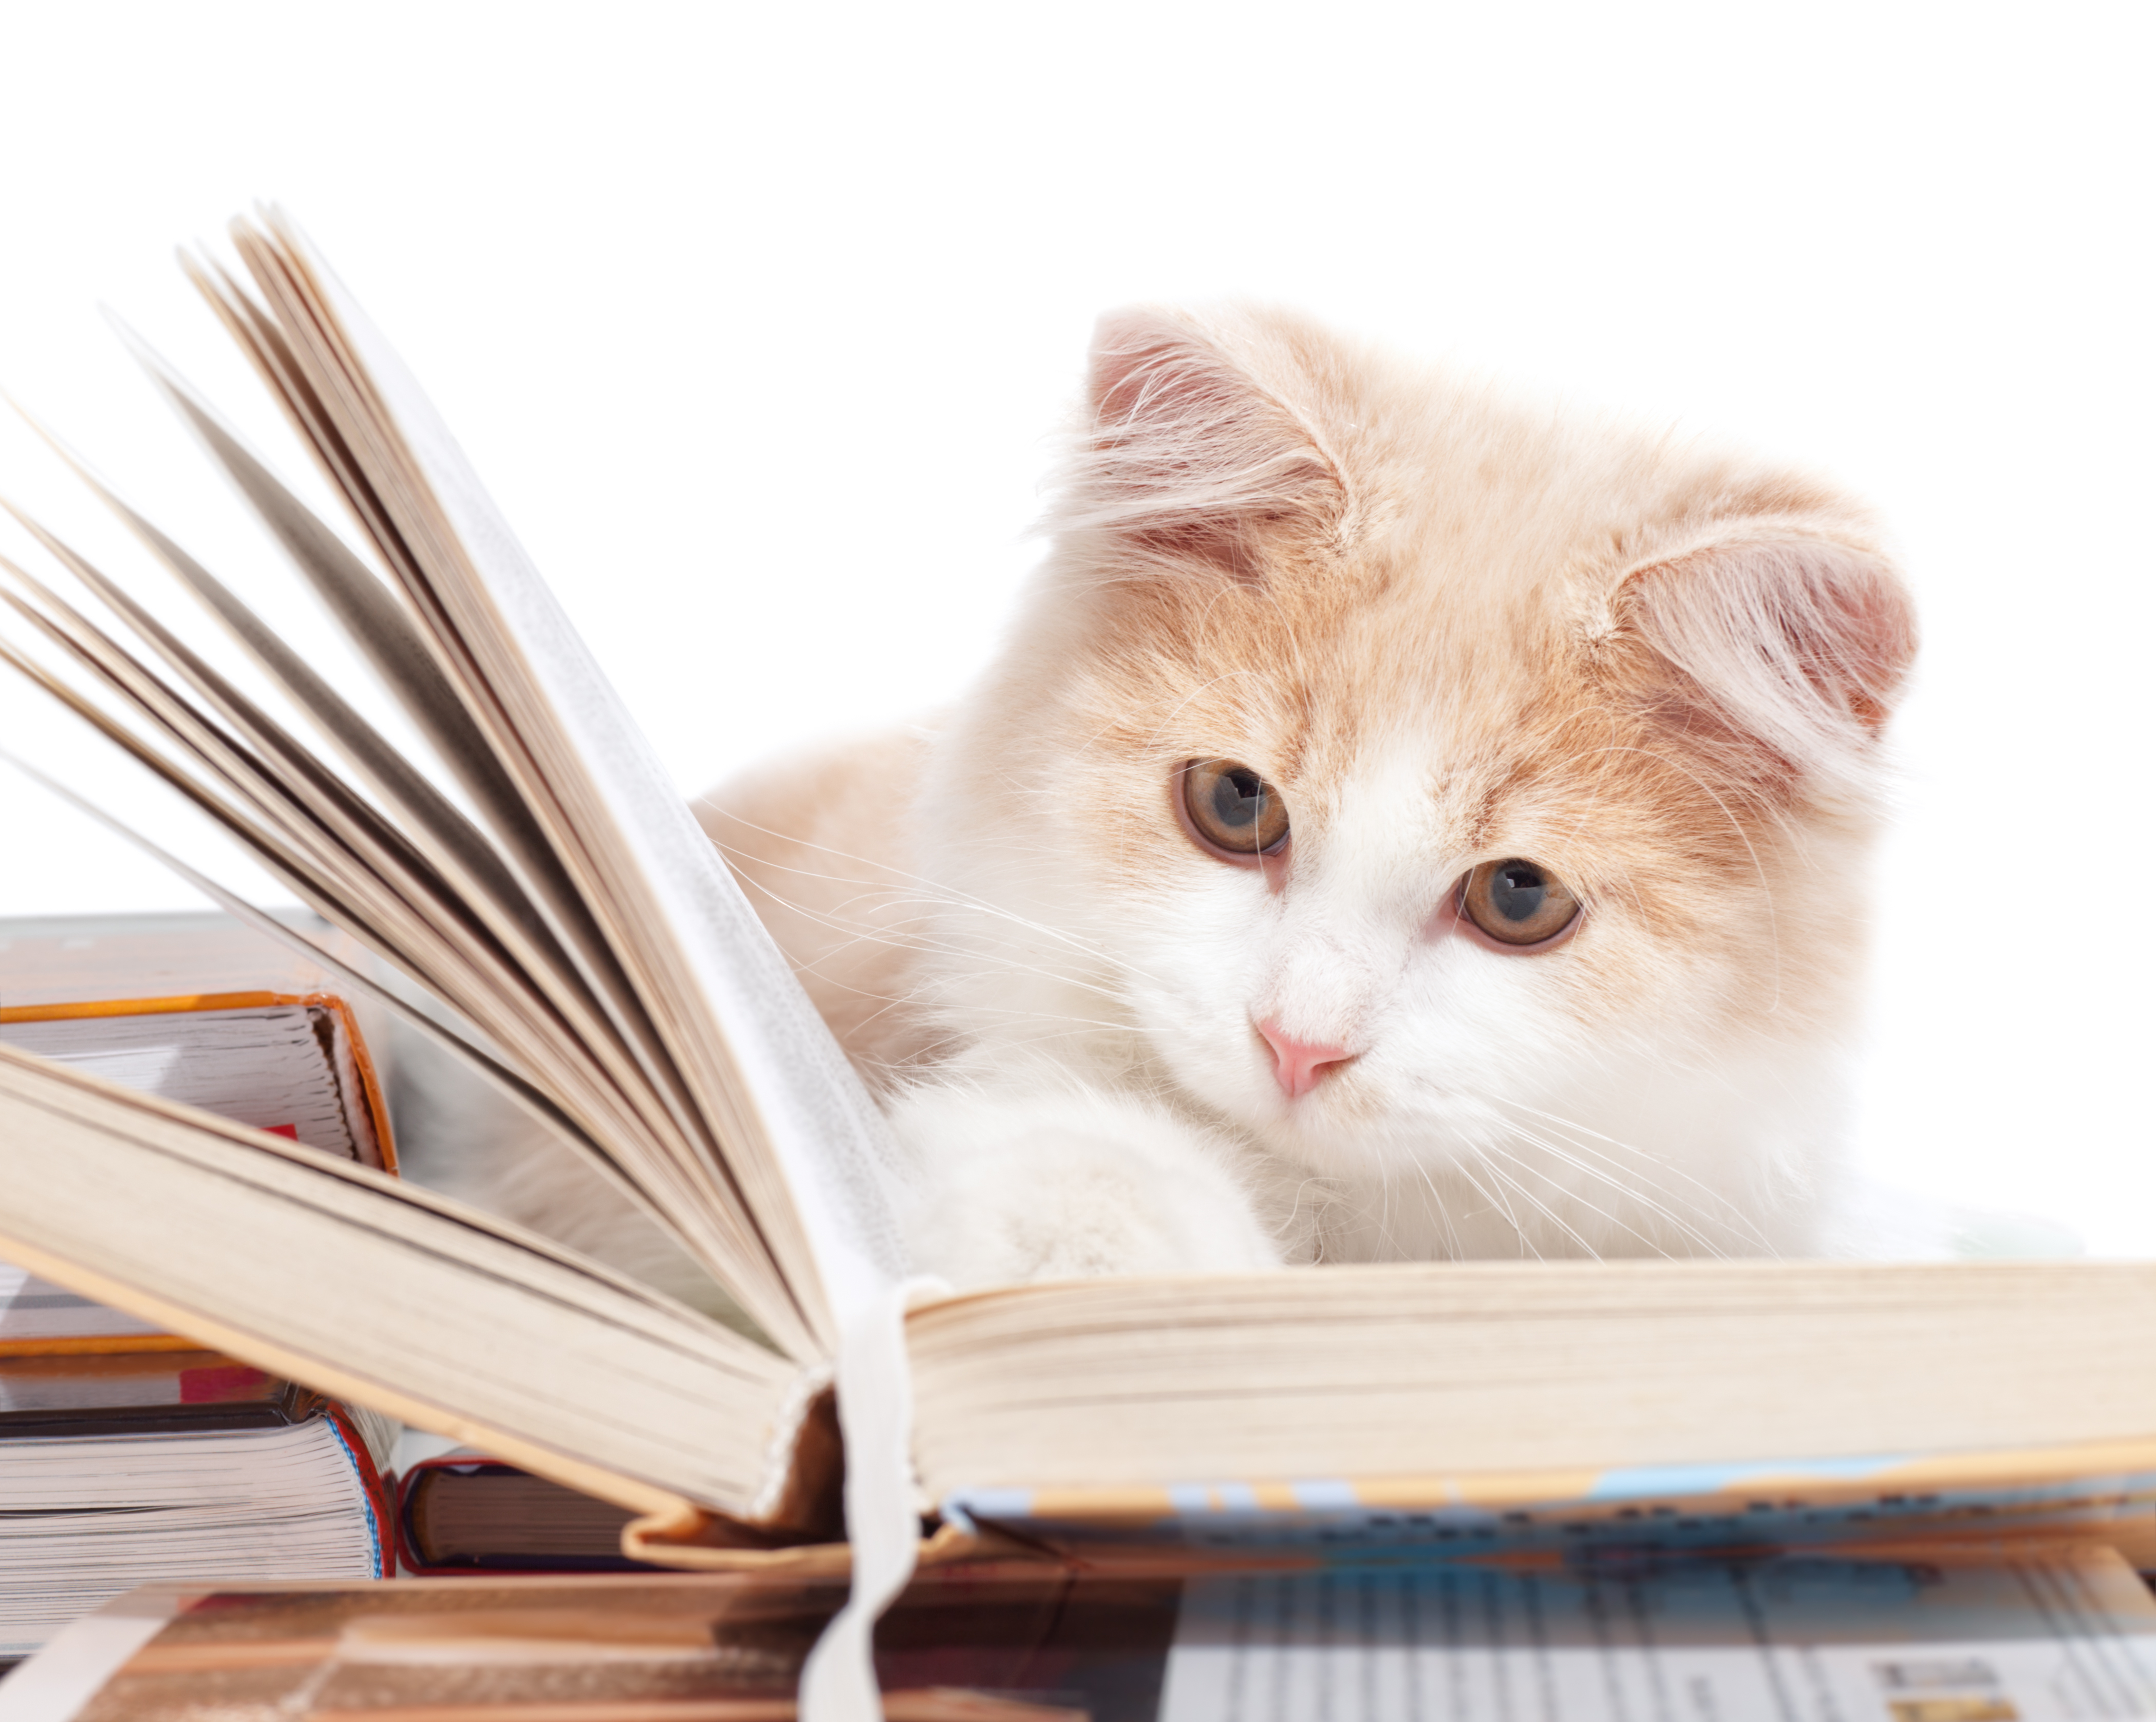 Read a version of The Jungle Book written in meows, thanks